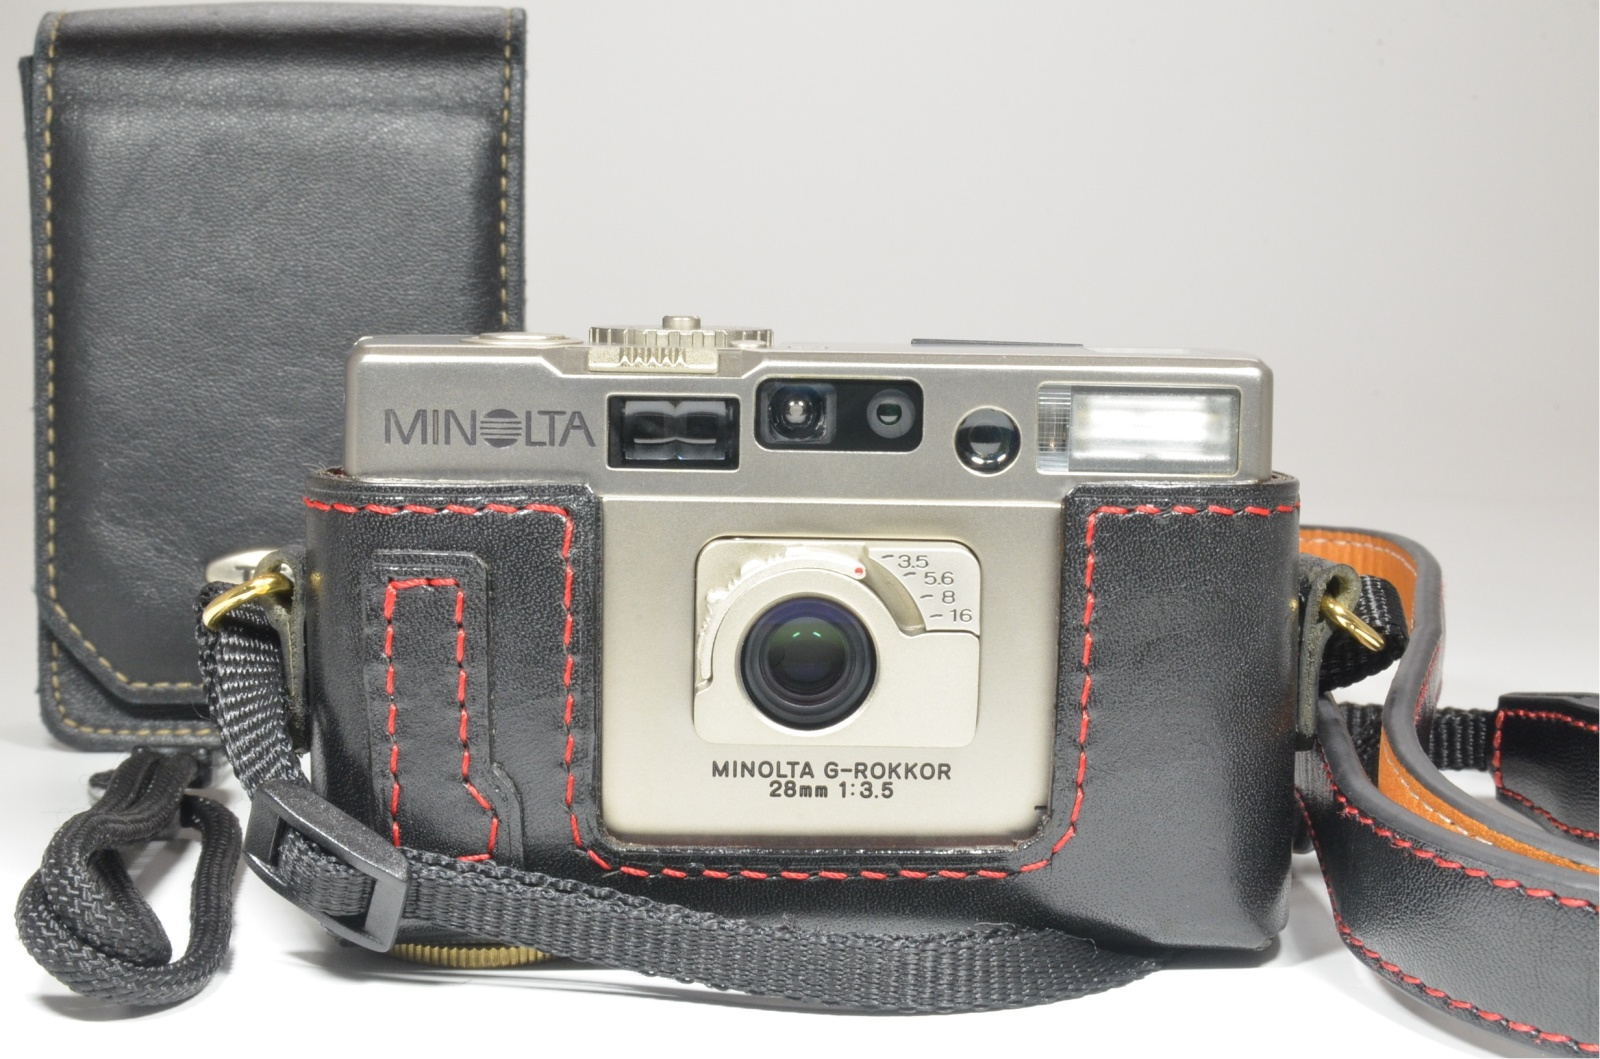 minolta tc-1 p&s film camera 28mm f3.5 with half leather case